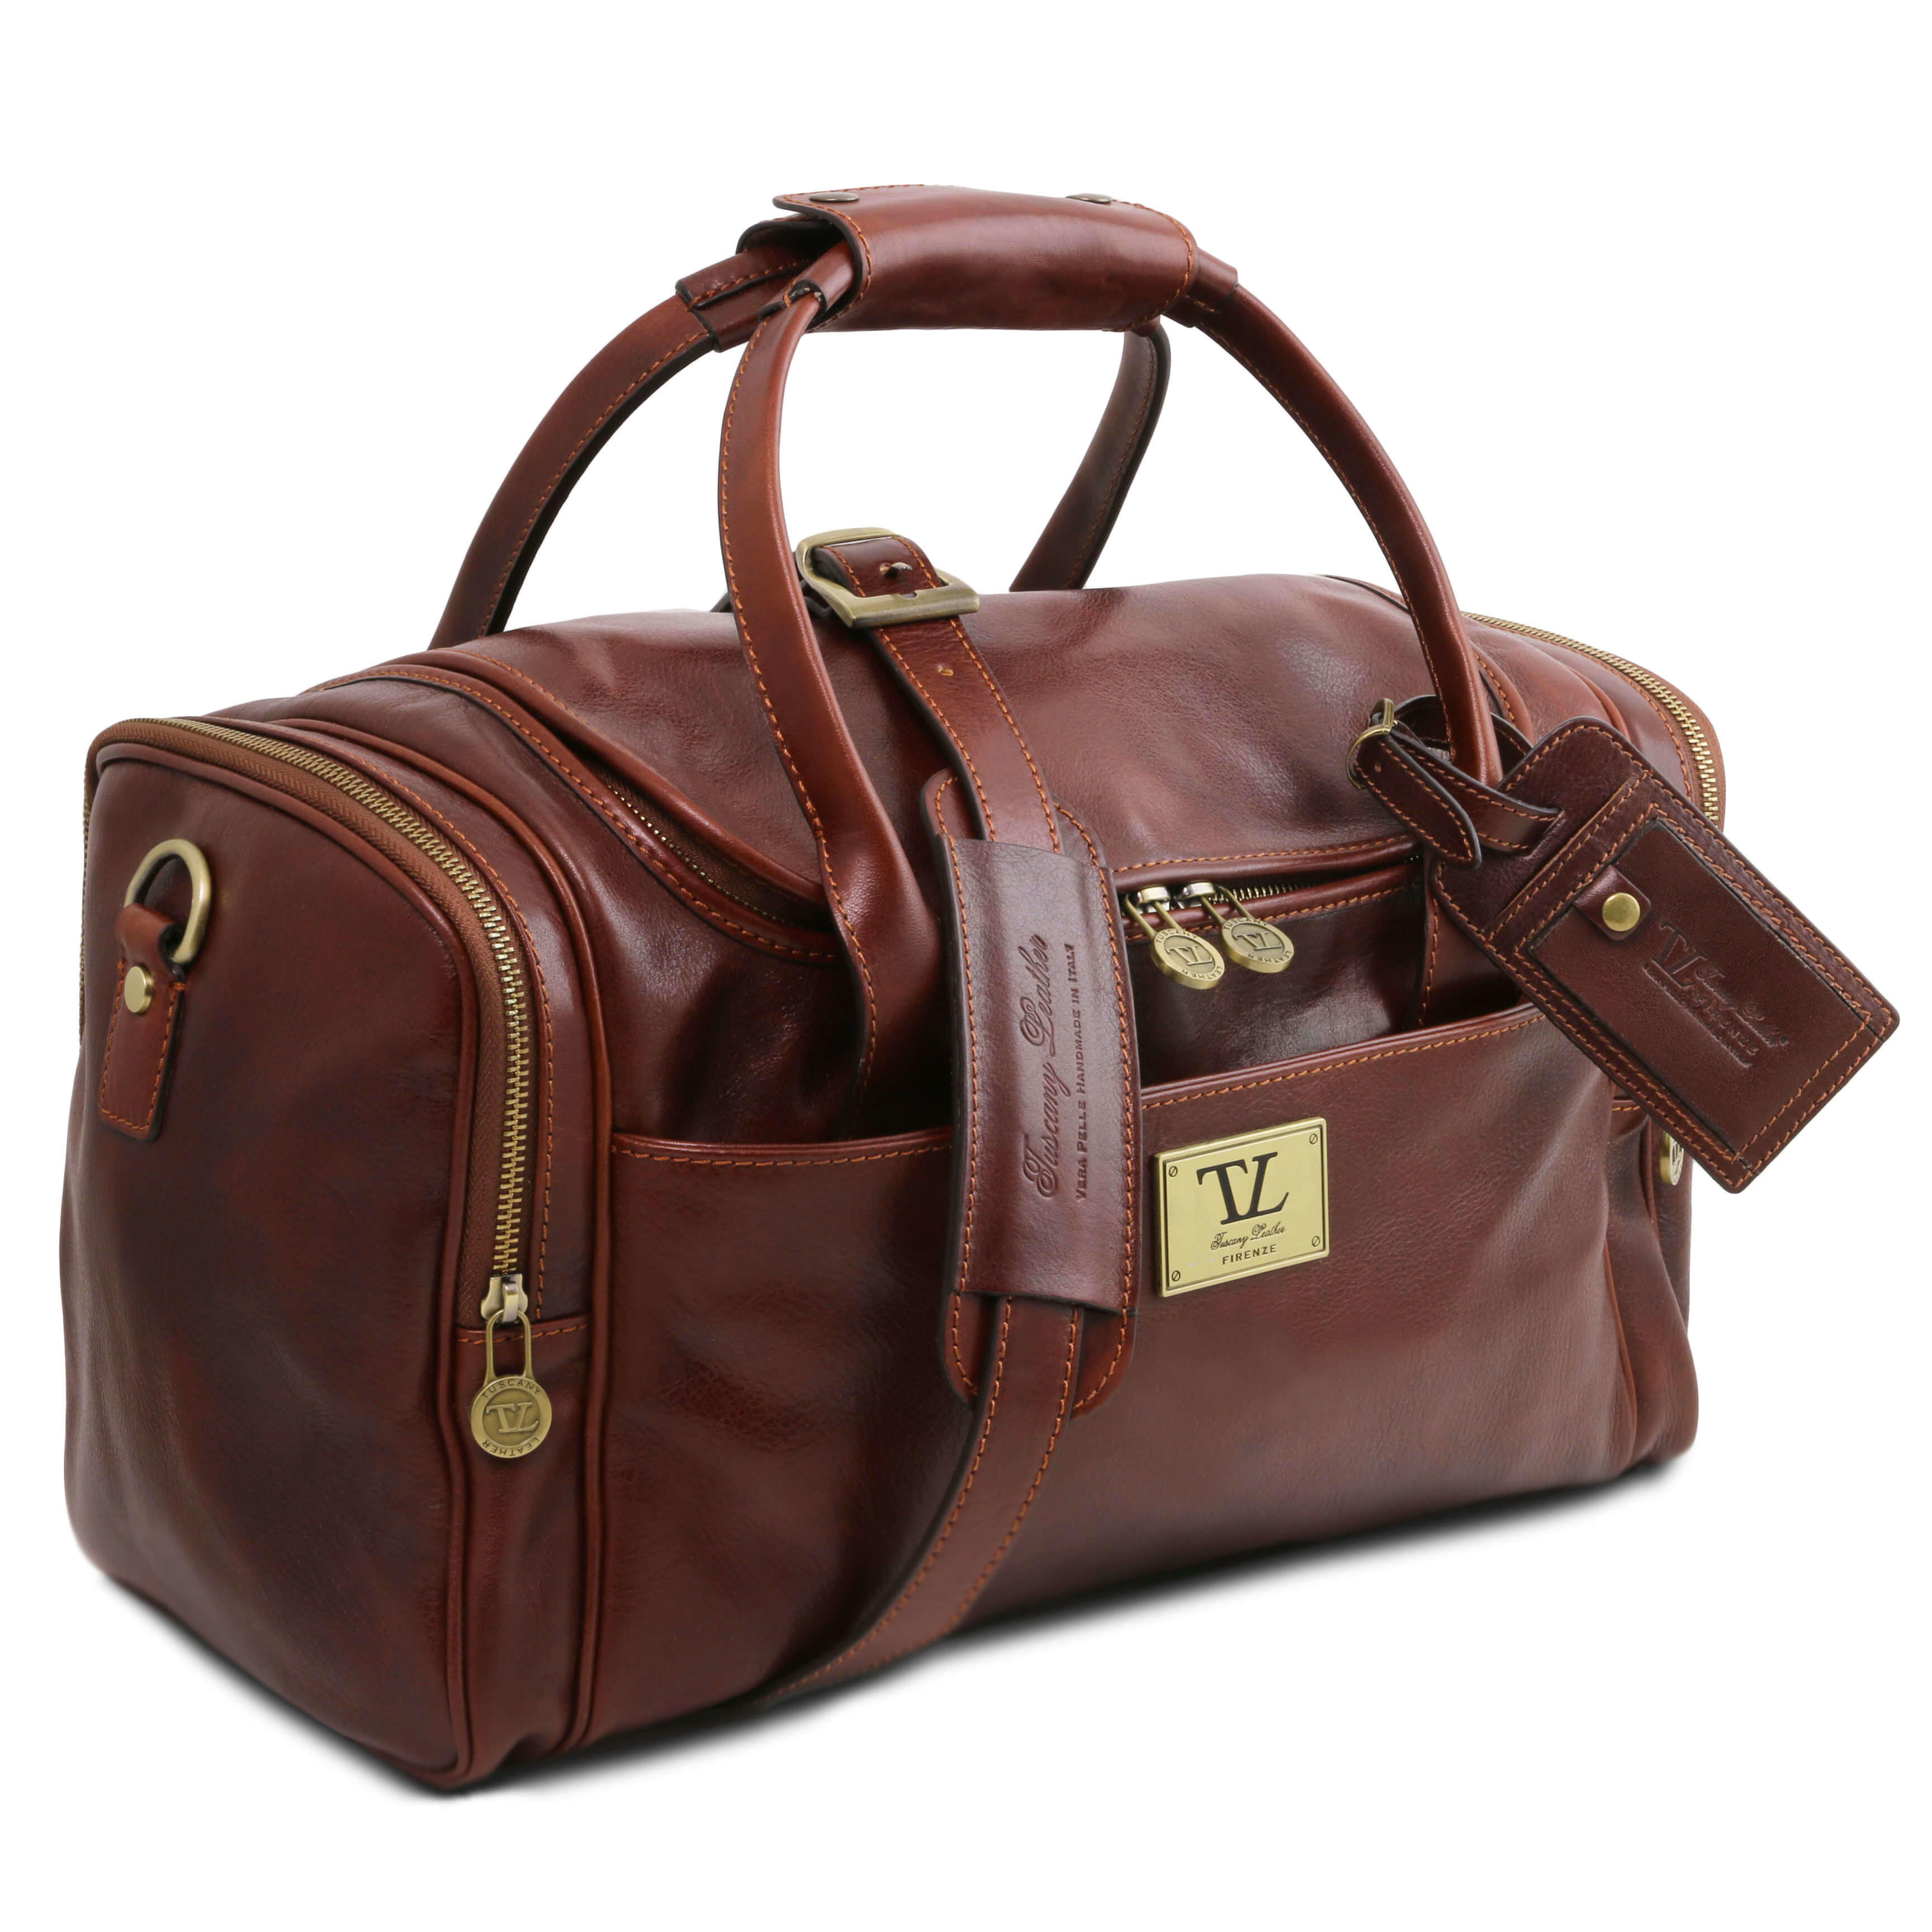 TL141441 Voyager Leather Travel-Weekender-Duffel-Bag-Case&Shoulder  Strap Choice of 3 Colours